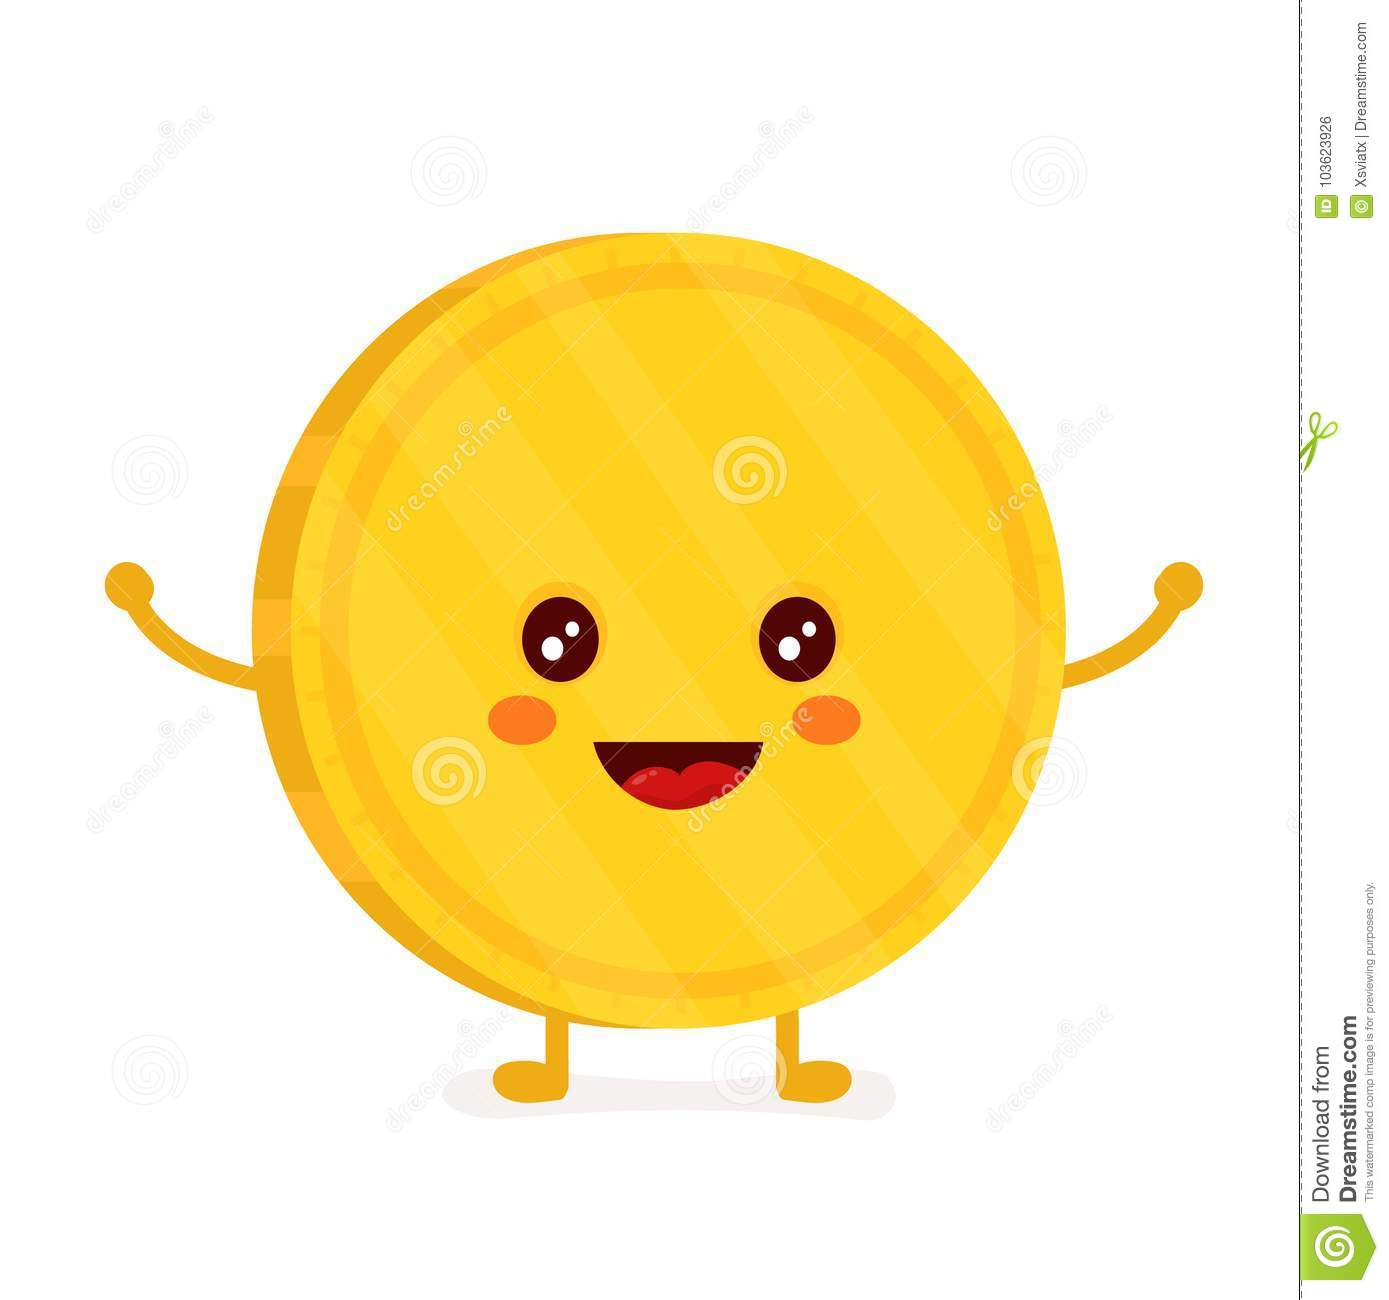 Funny Smiling Cute Gold Coin Vector Stock Vector Illustration Of Emoticon Gold 103623926